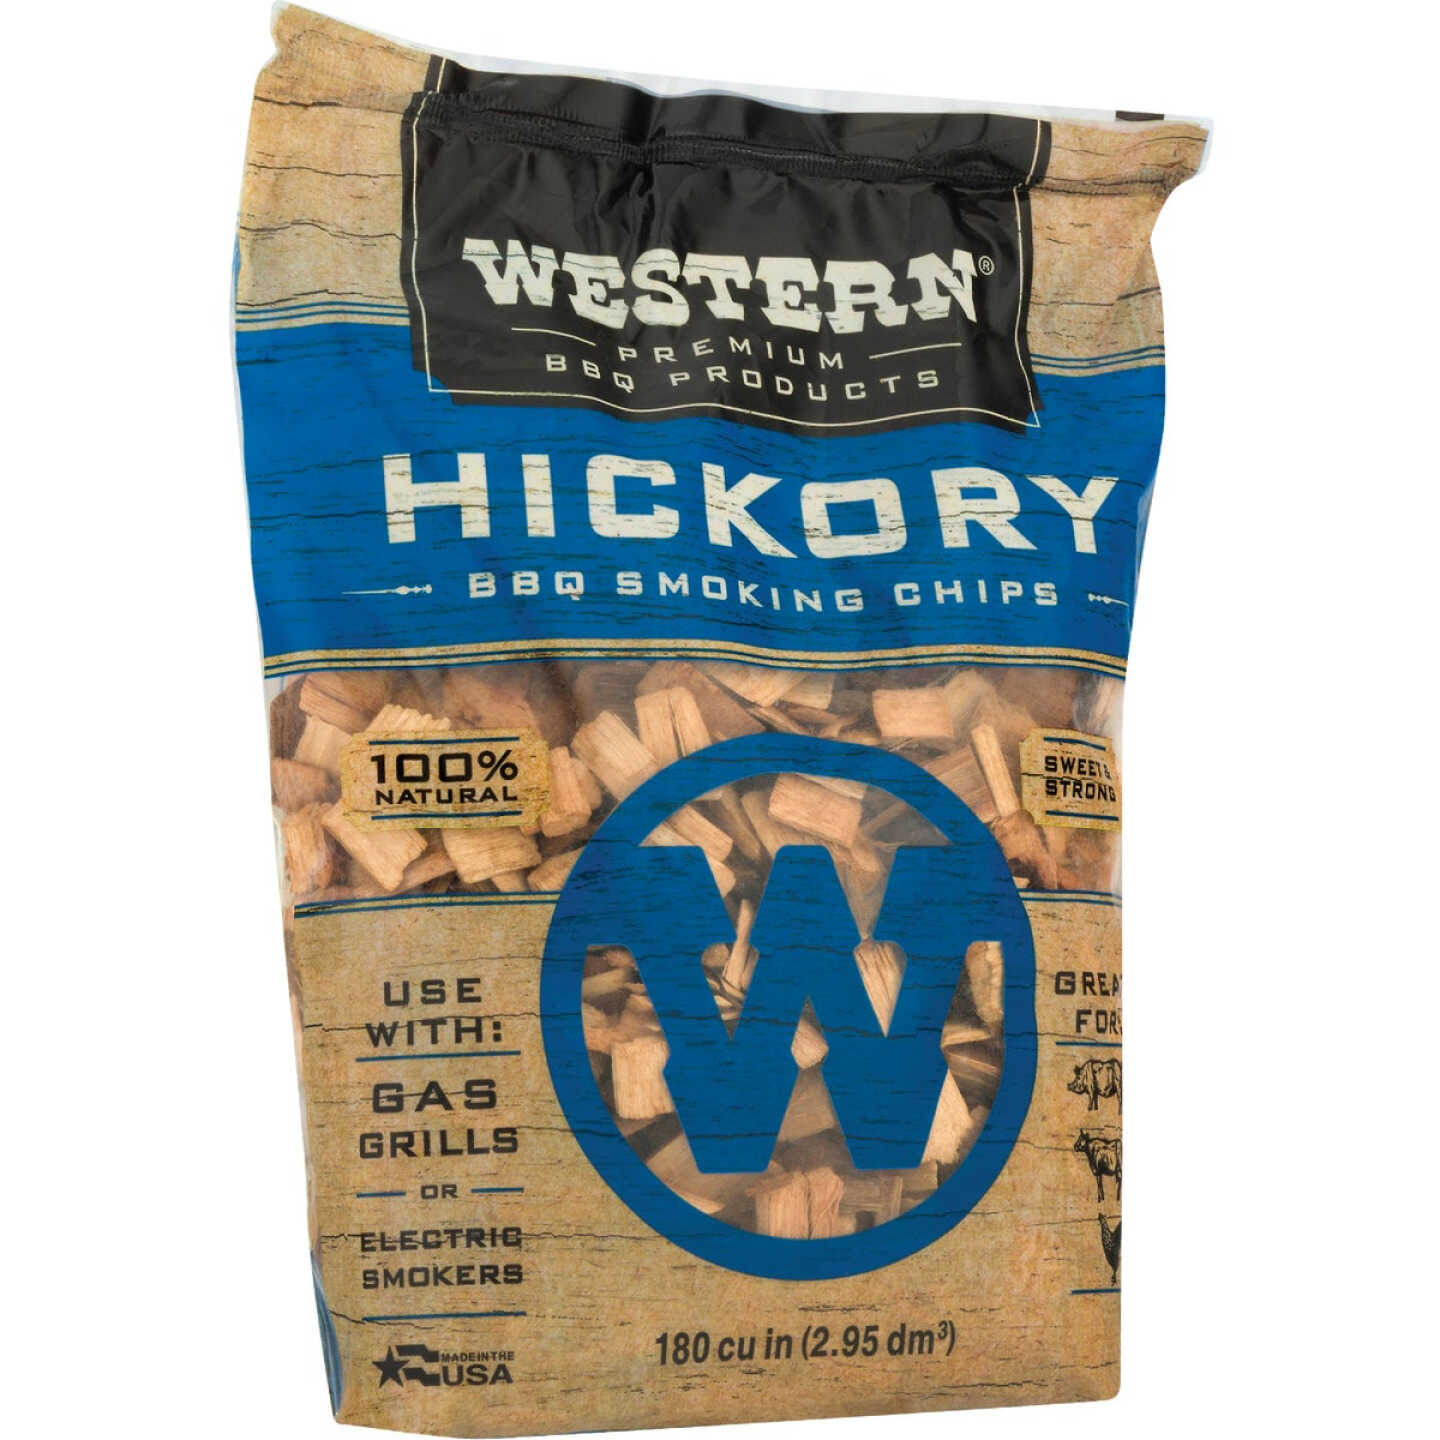 Western 180 Cu. In. Hickory Wood Smoking Chips Image 3